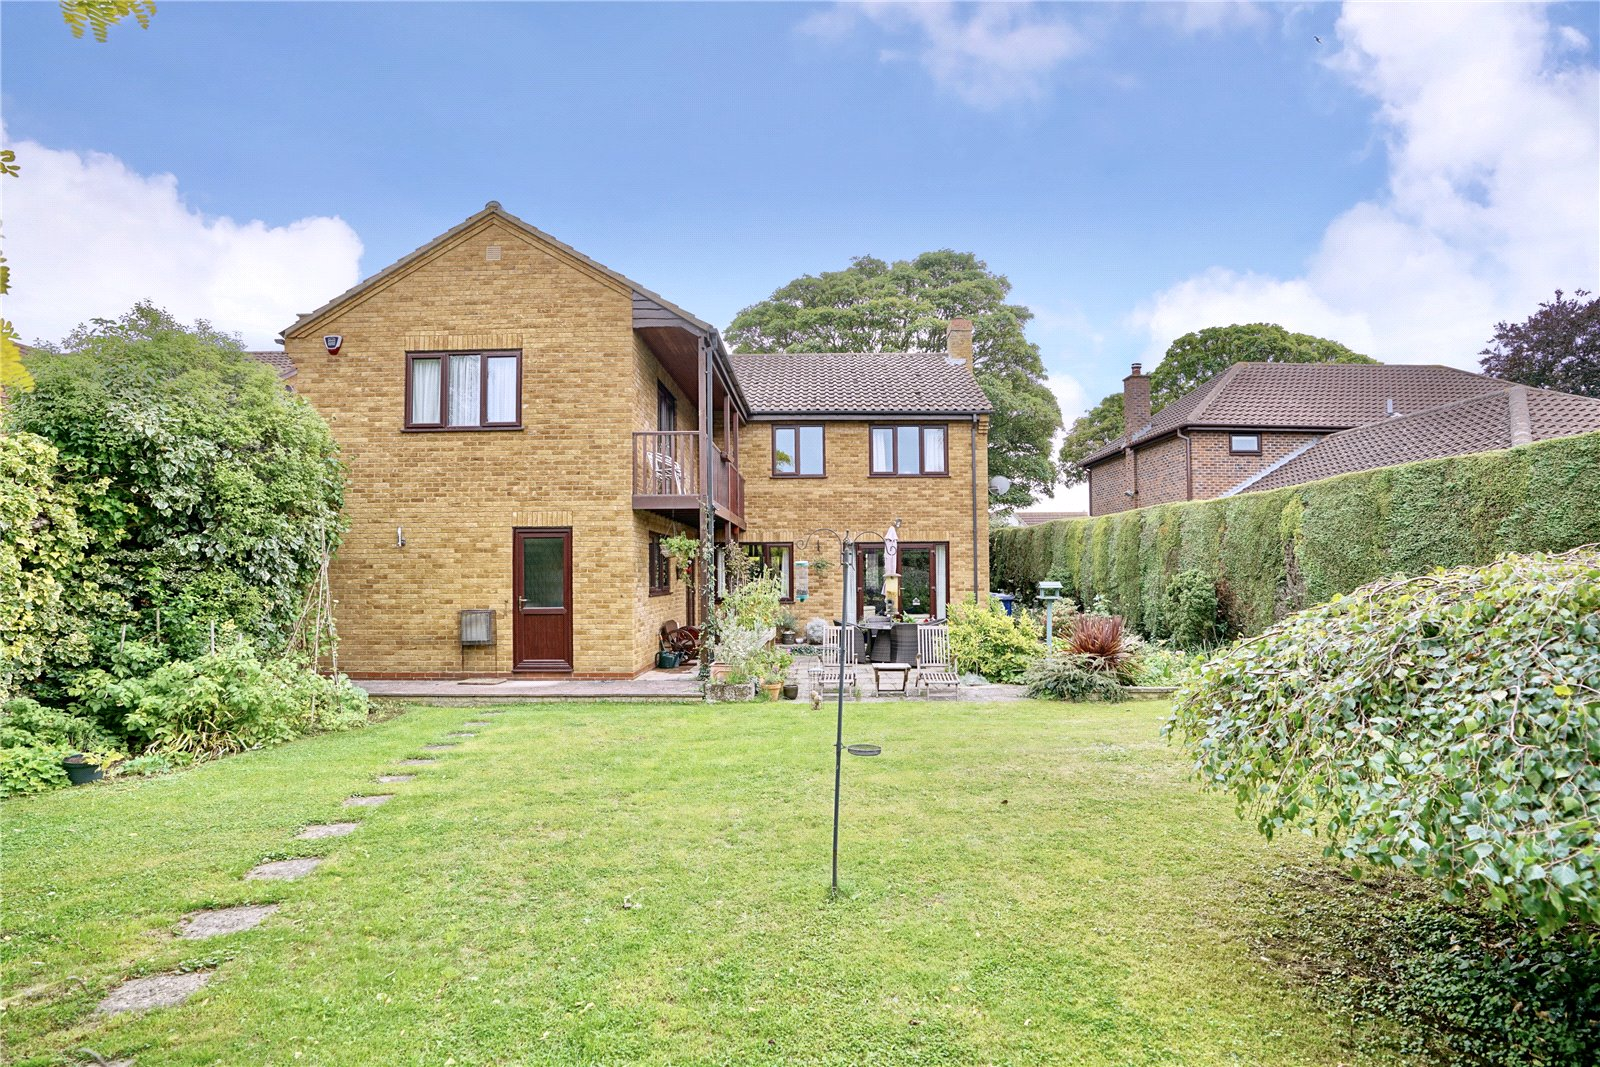 5 bed house for sale in Great North Road, Eaton Ford  - Property Image 19